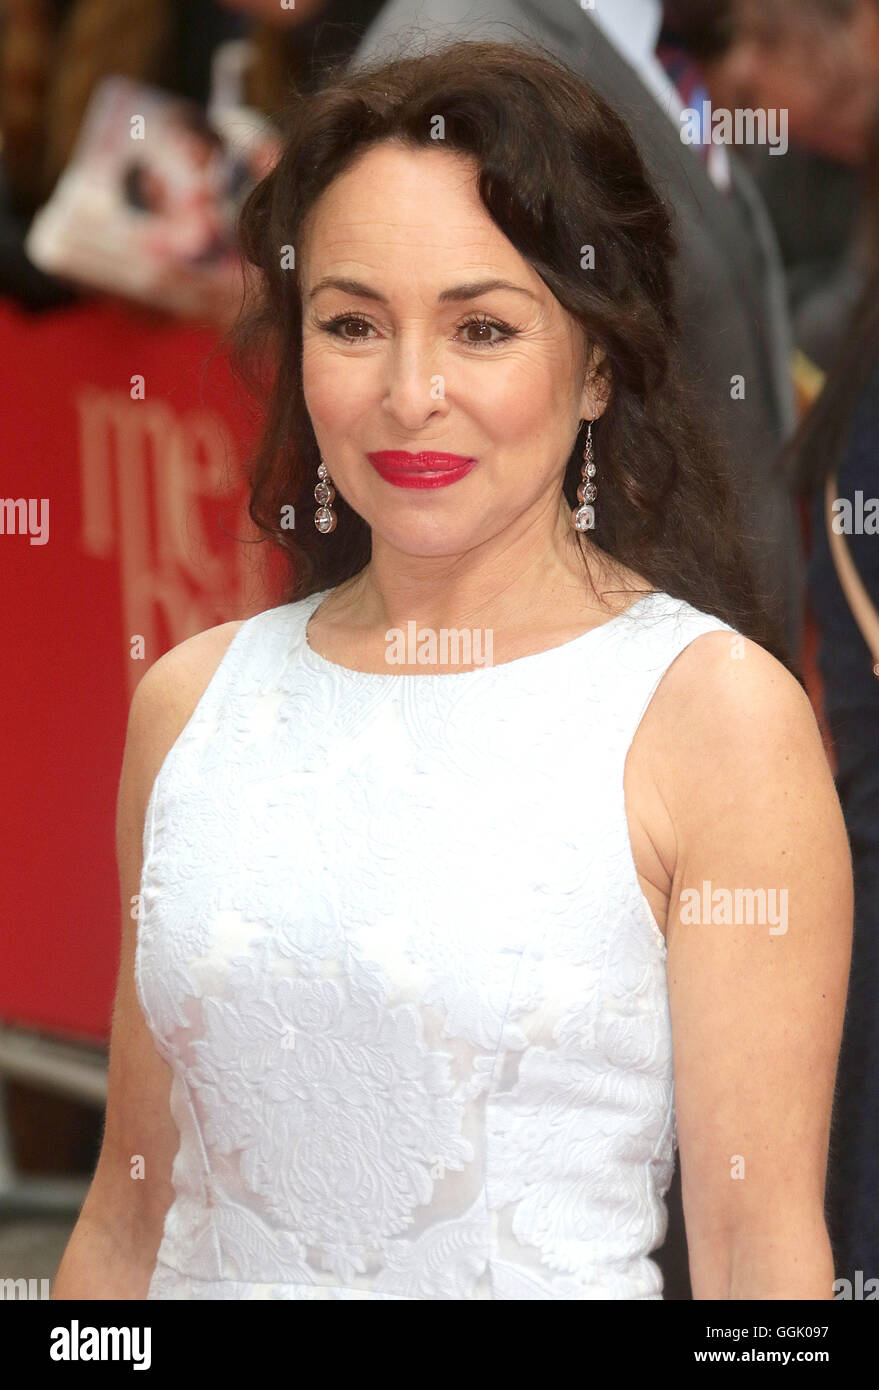 May 25, 2016 - Samantha Spiro attending 'Me Before You' - European Film Premiere at Curzon, Mayfair in London, - Stock Image